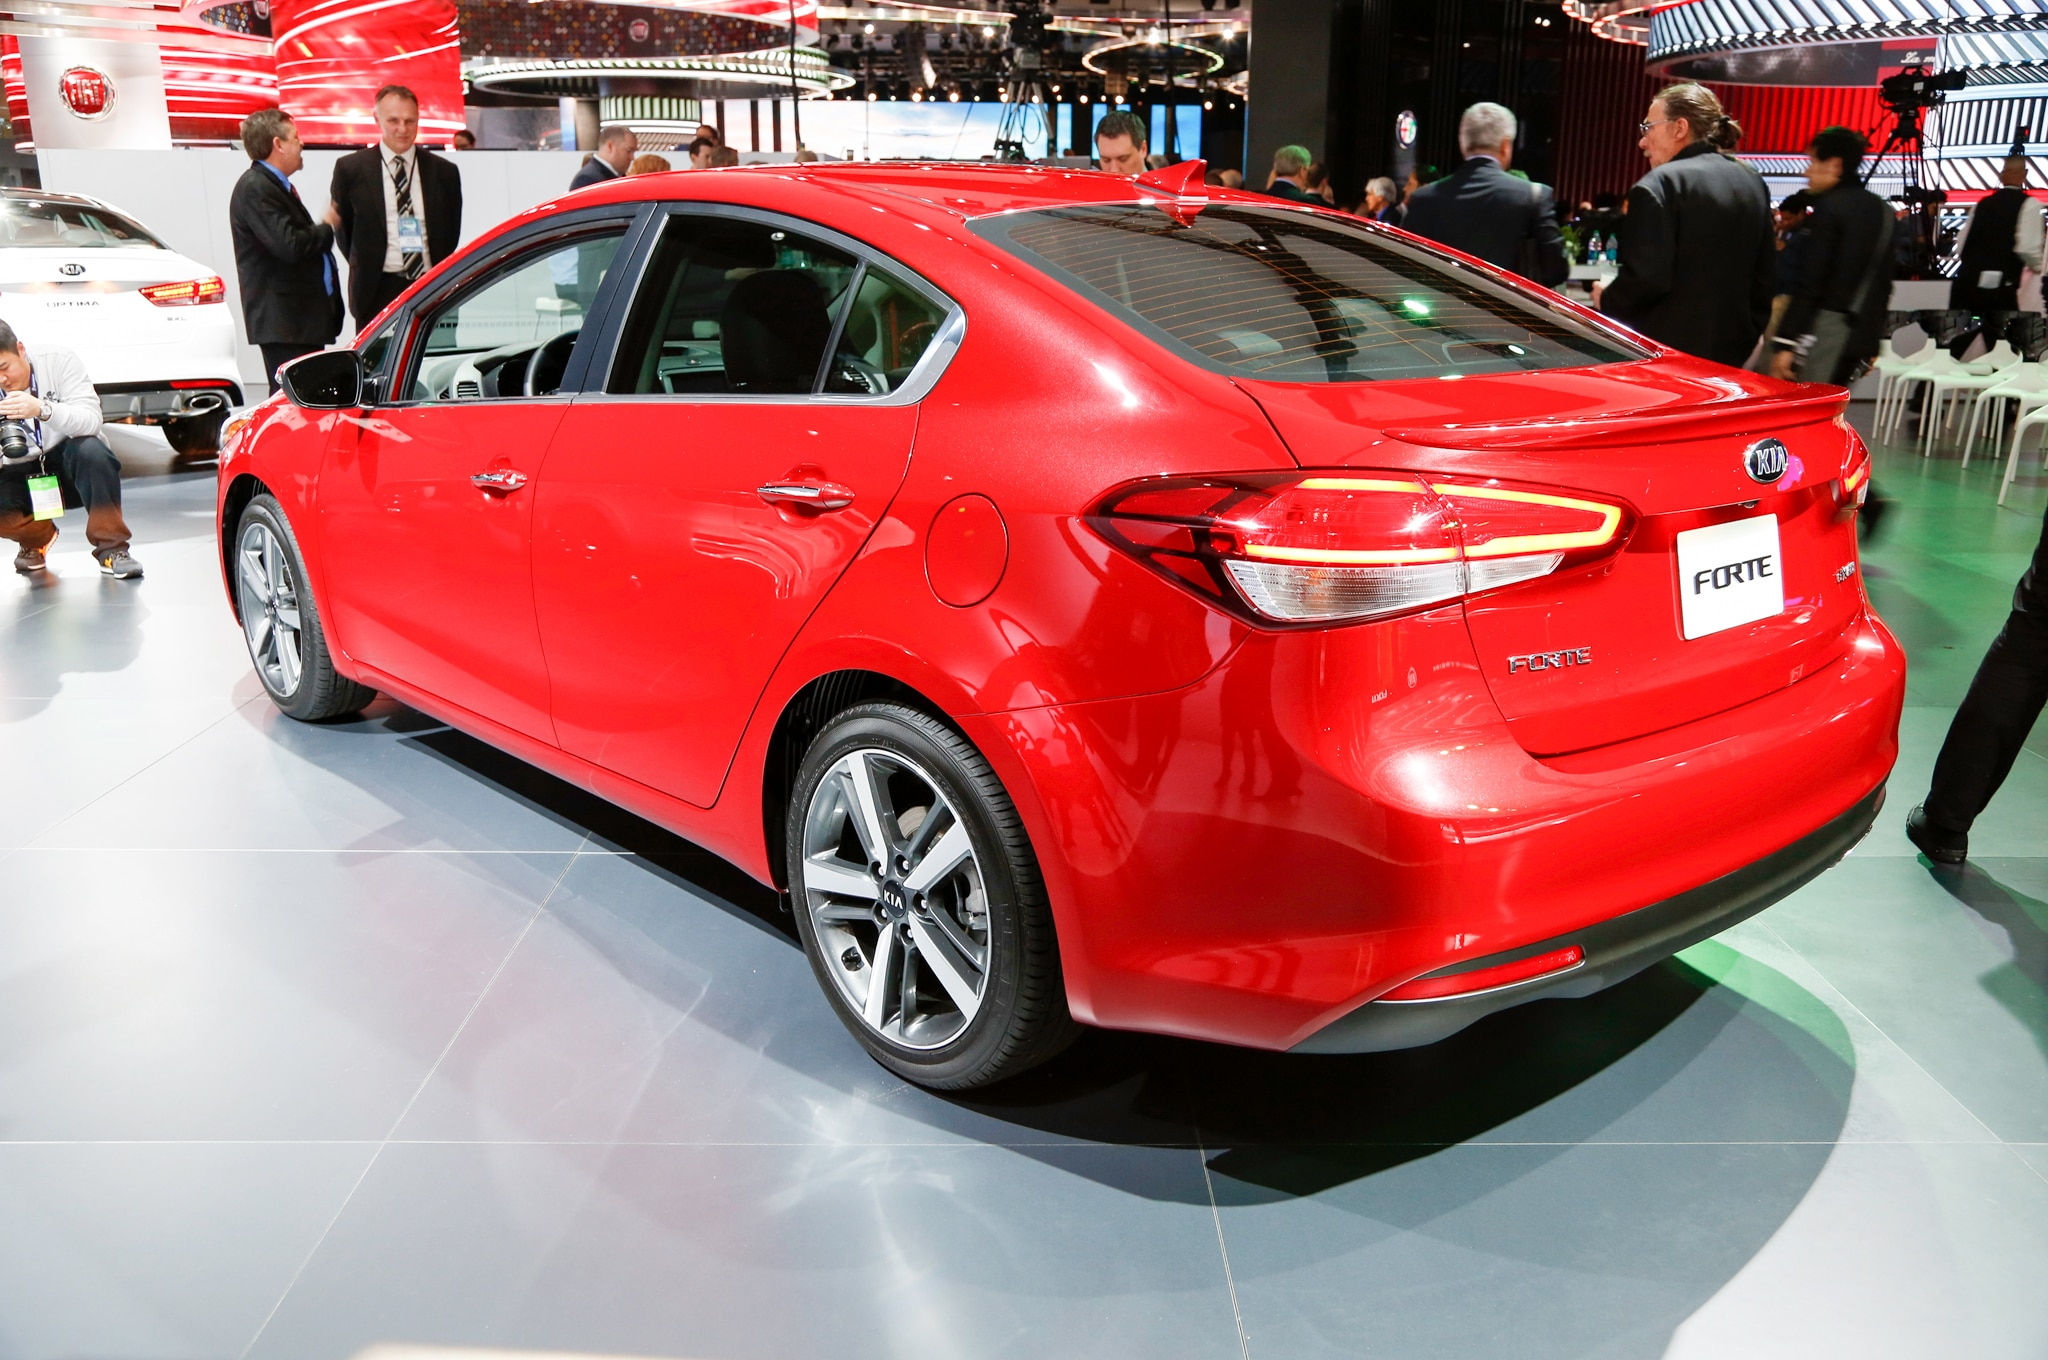 2017 Kia Forte Updated With New Base Engine Revised Looks Diagram 2 15